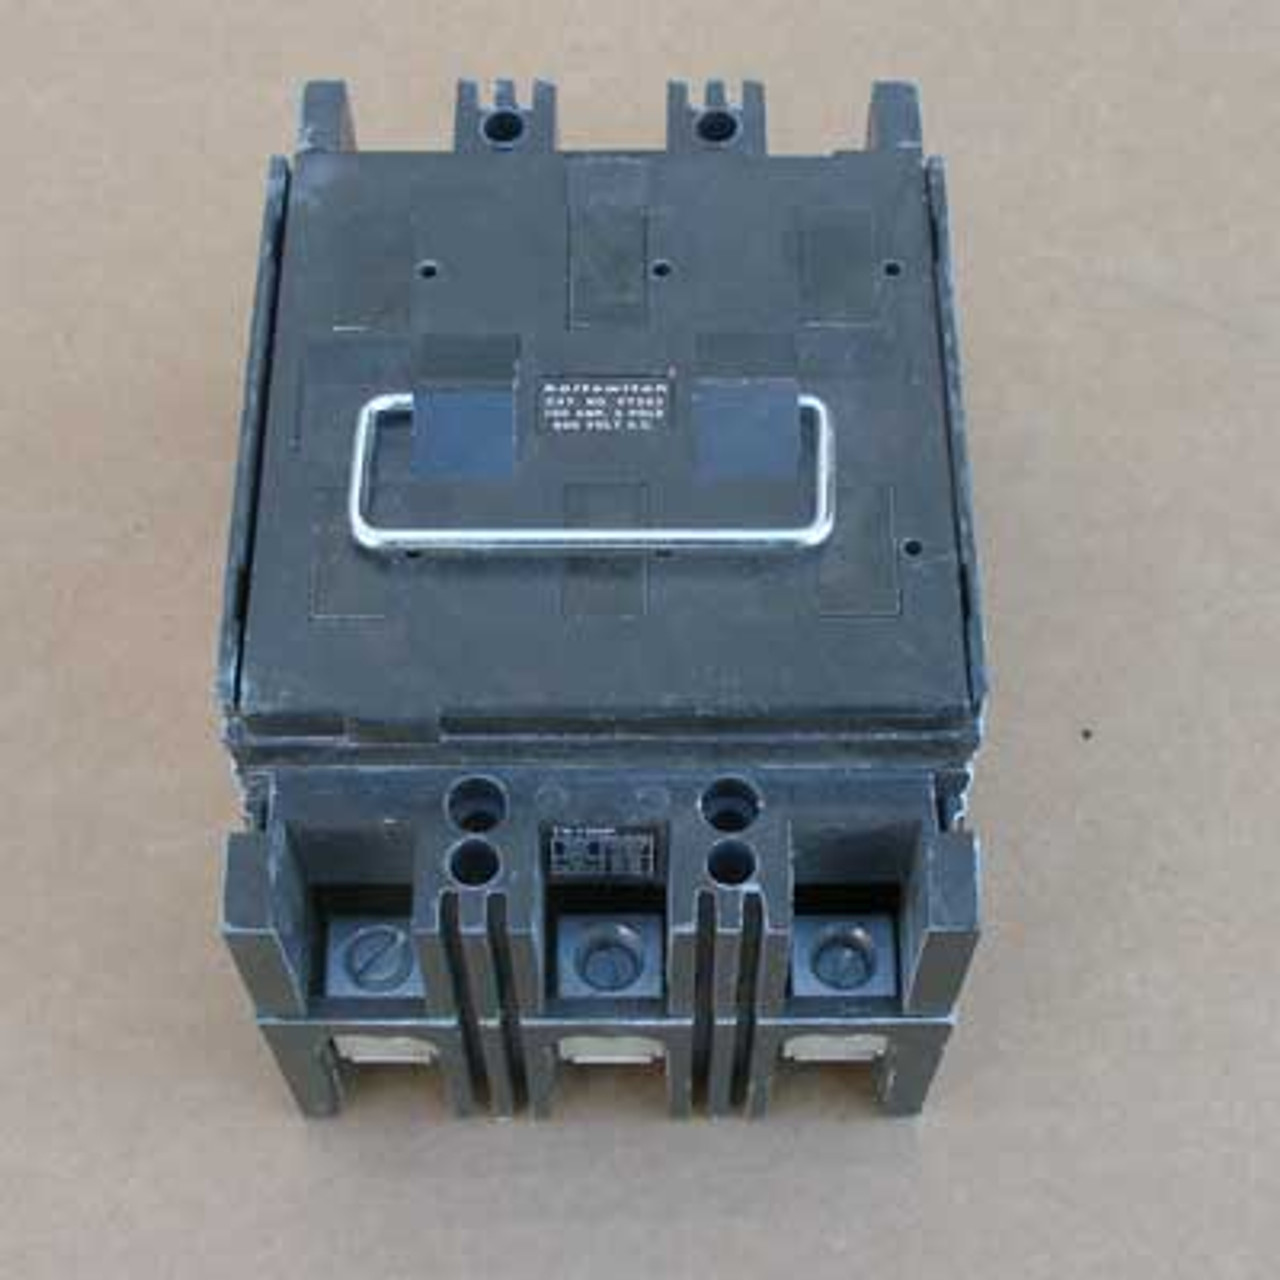 Boltswitch PT363 3 Pole 100 Amp 600V Pullout Switch - New Pullout